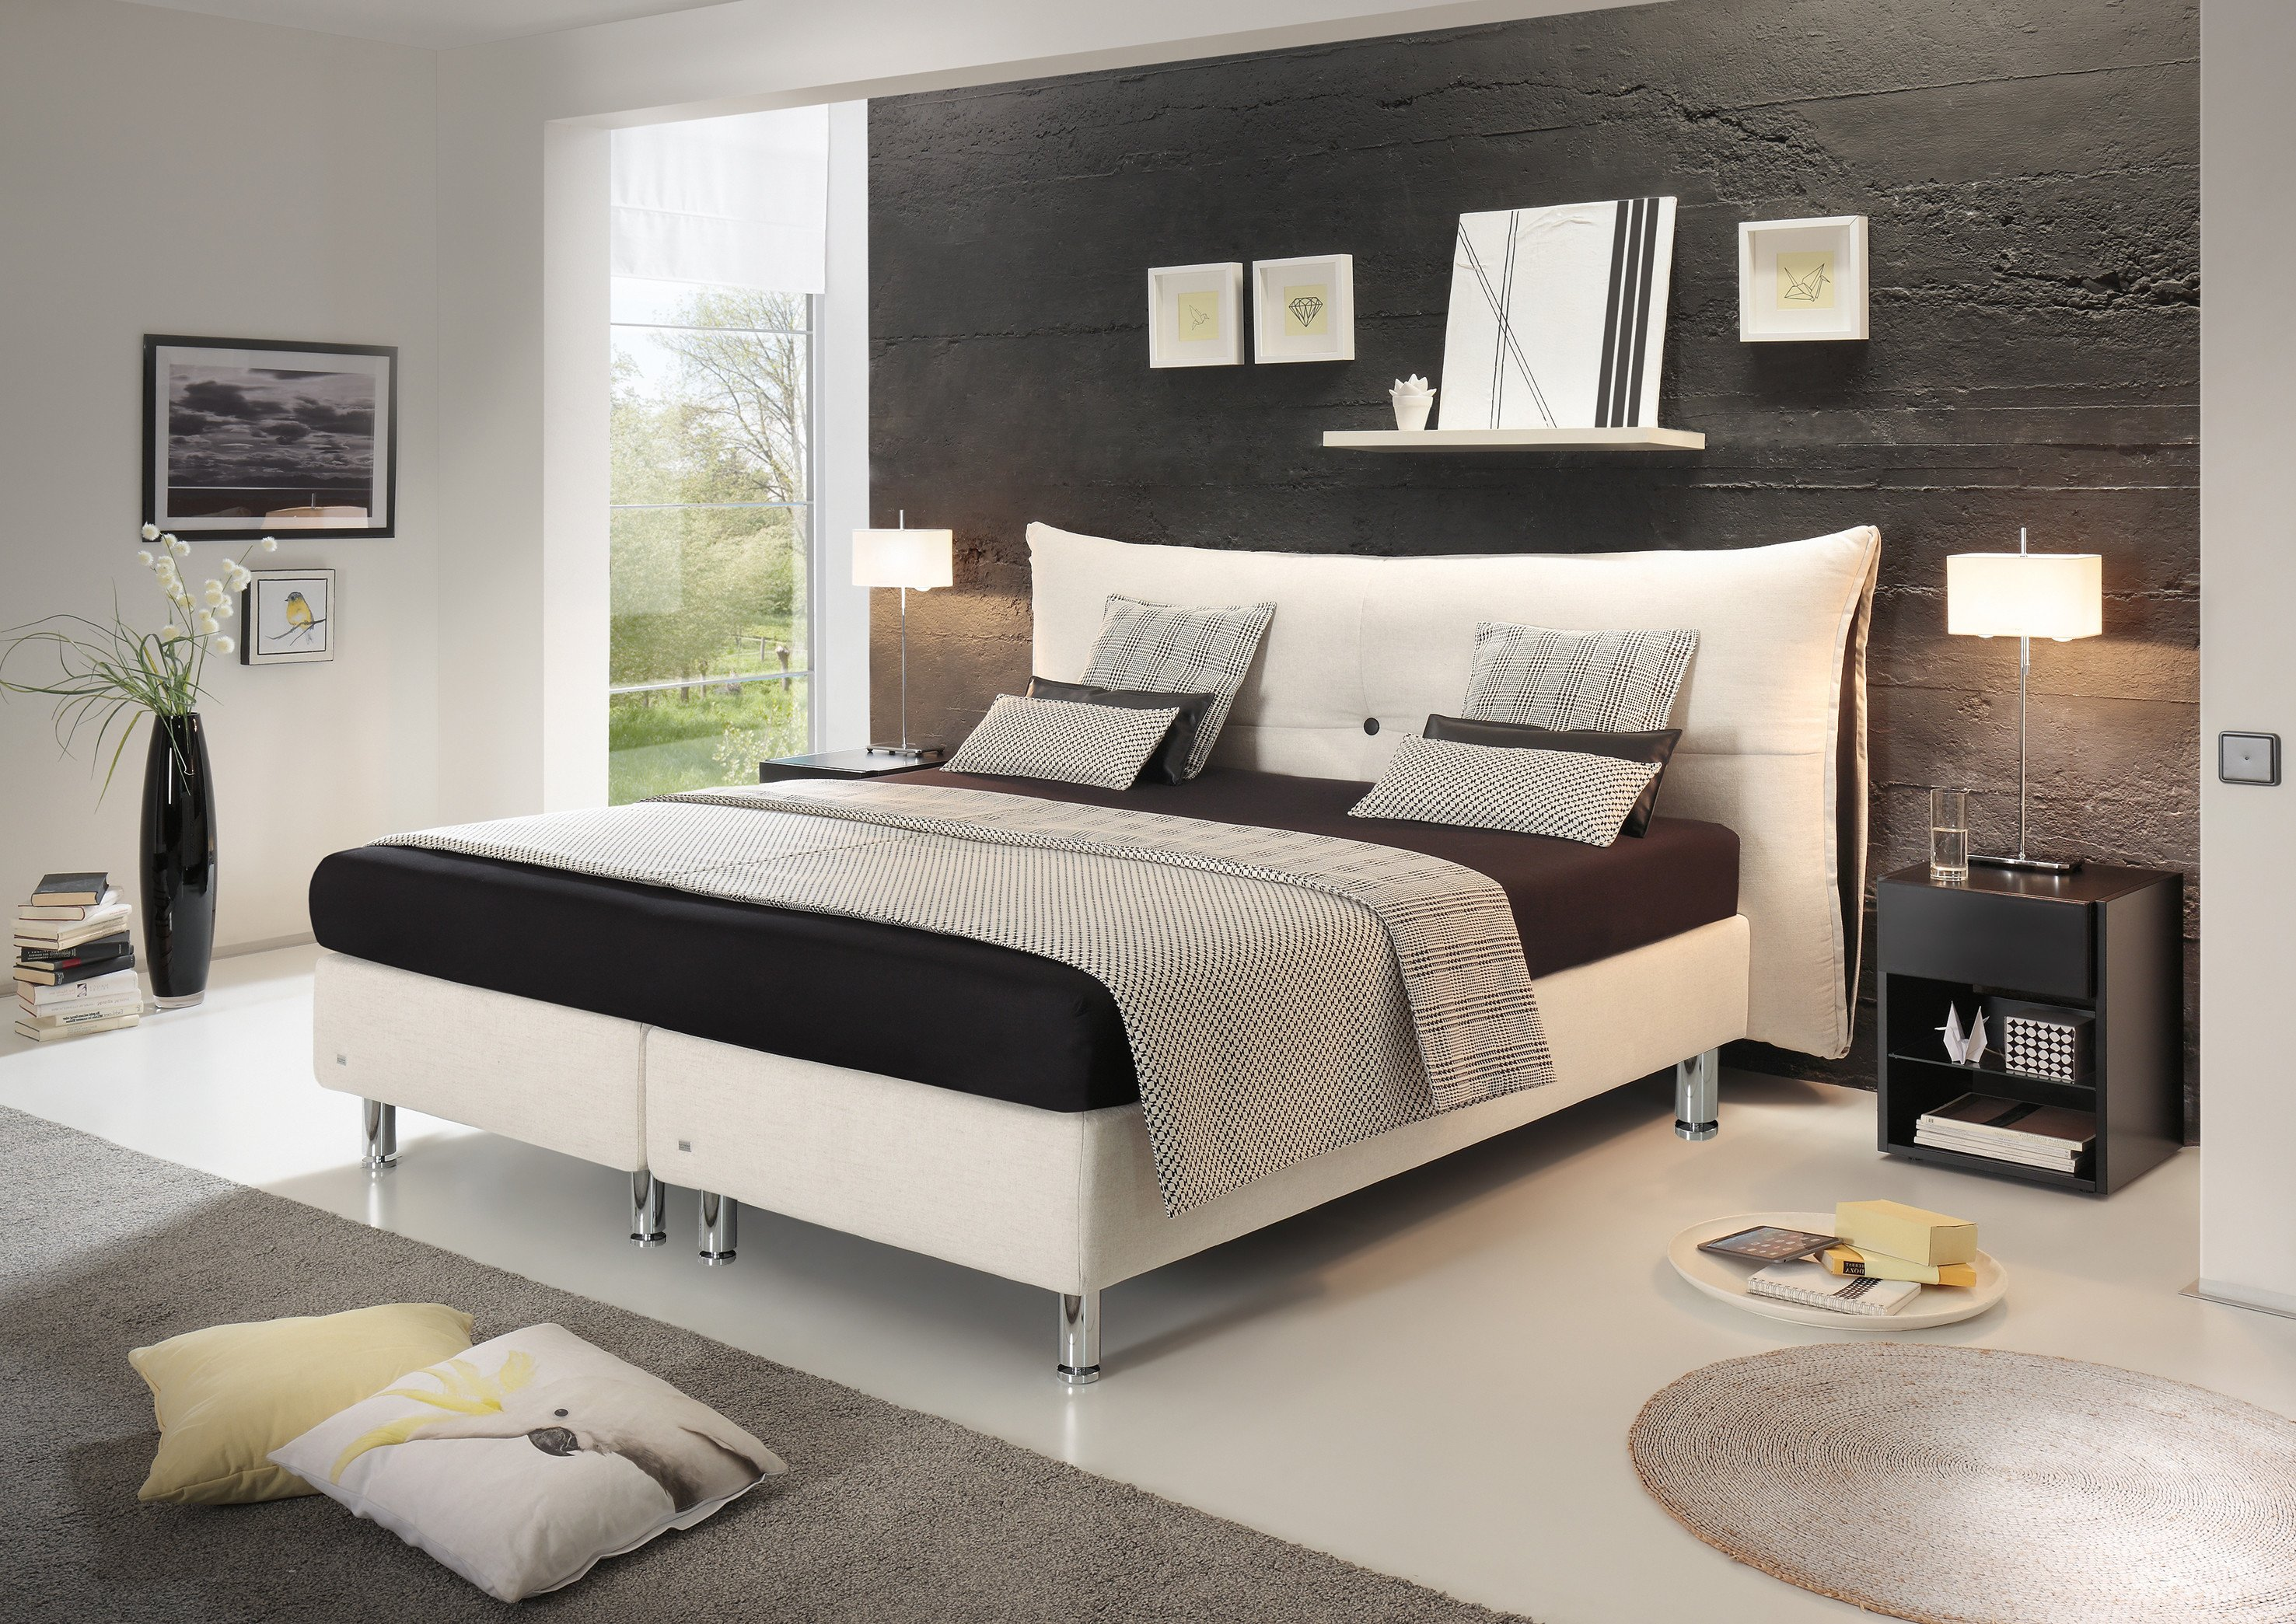 ruf santino boxspringbett in natur schwarz m bel letz ihr online shop. Black Bedroom Furniture Sets. Home Design Ideas